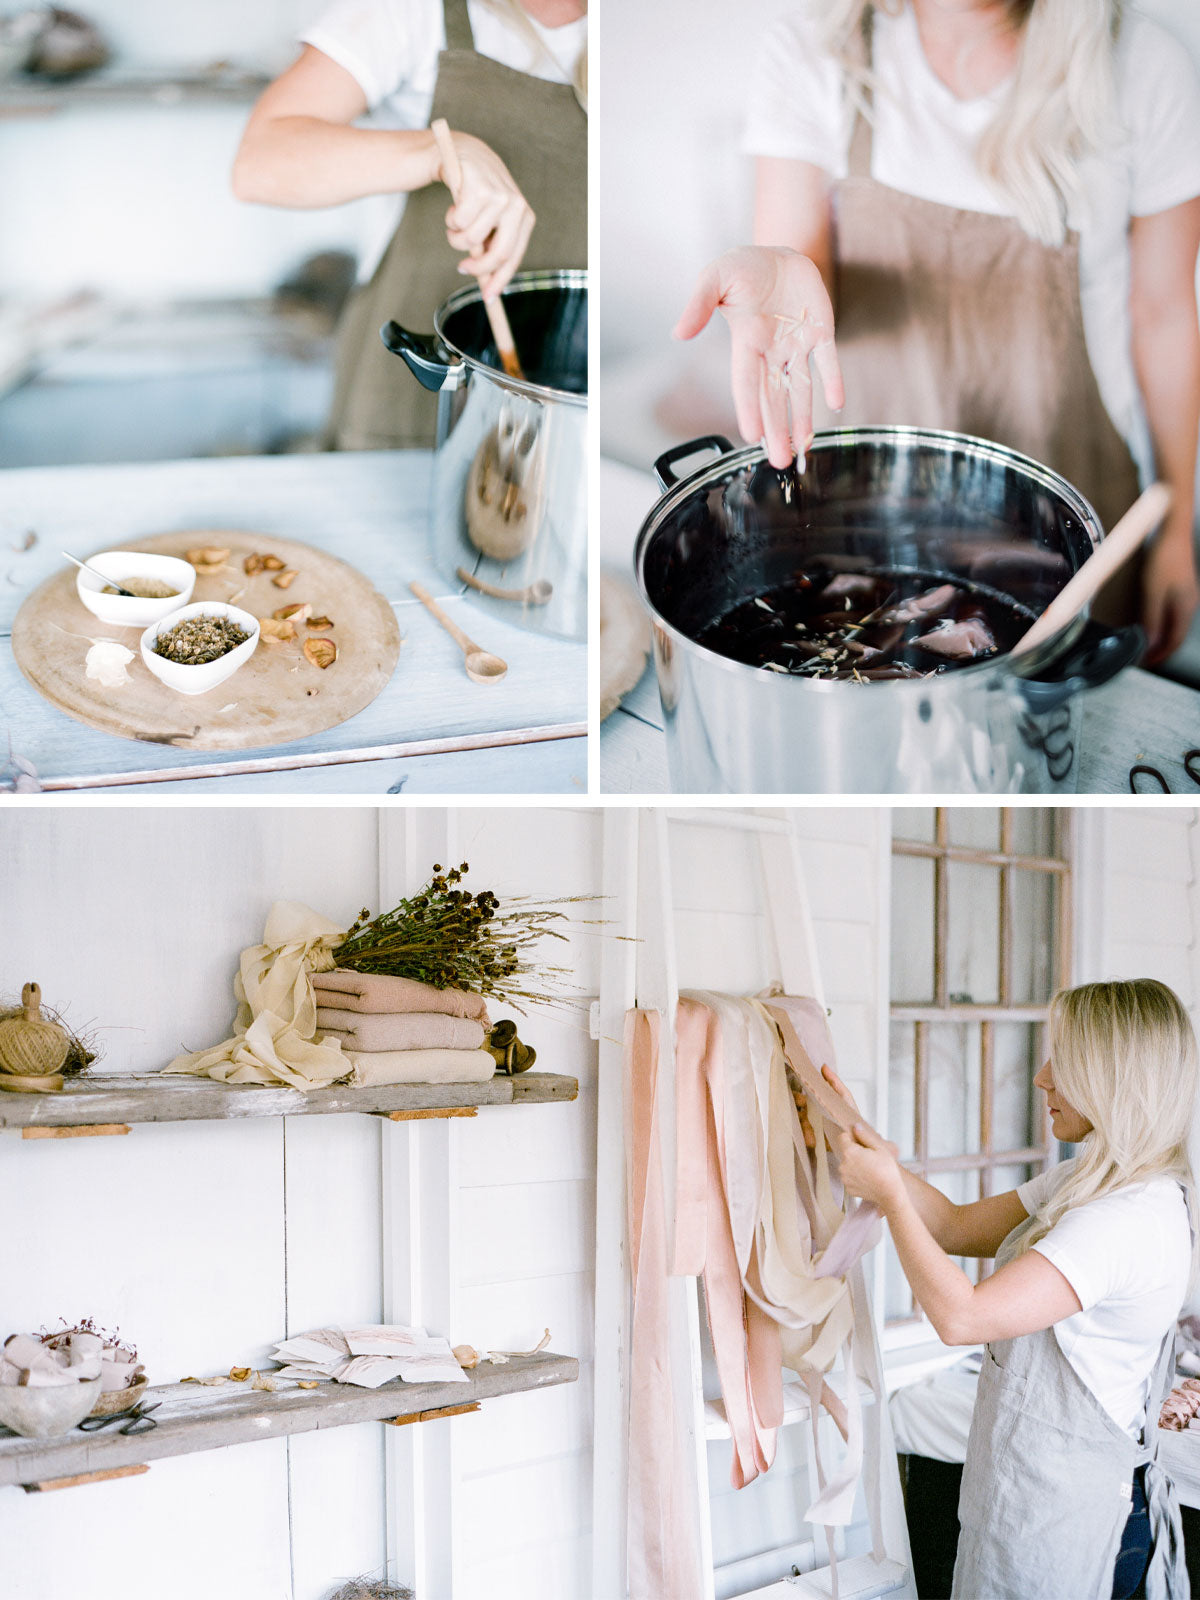 Silk dying process step by step from the natural herbs used to the actual dying and then drying